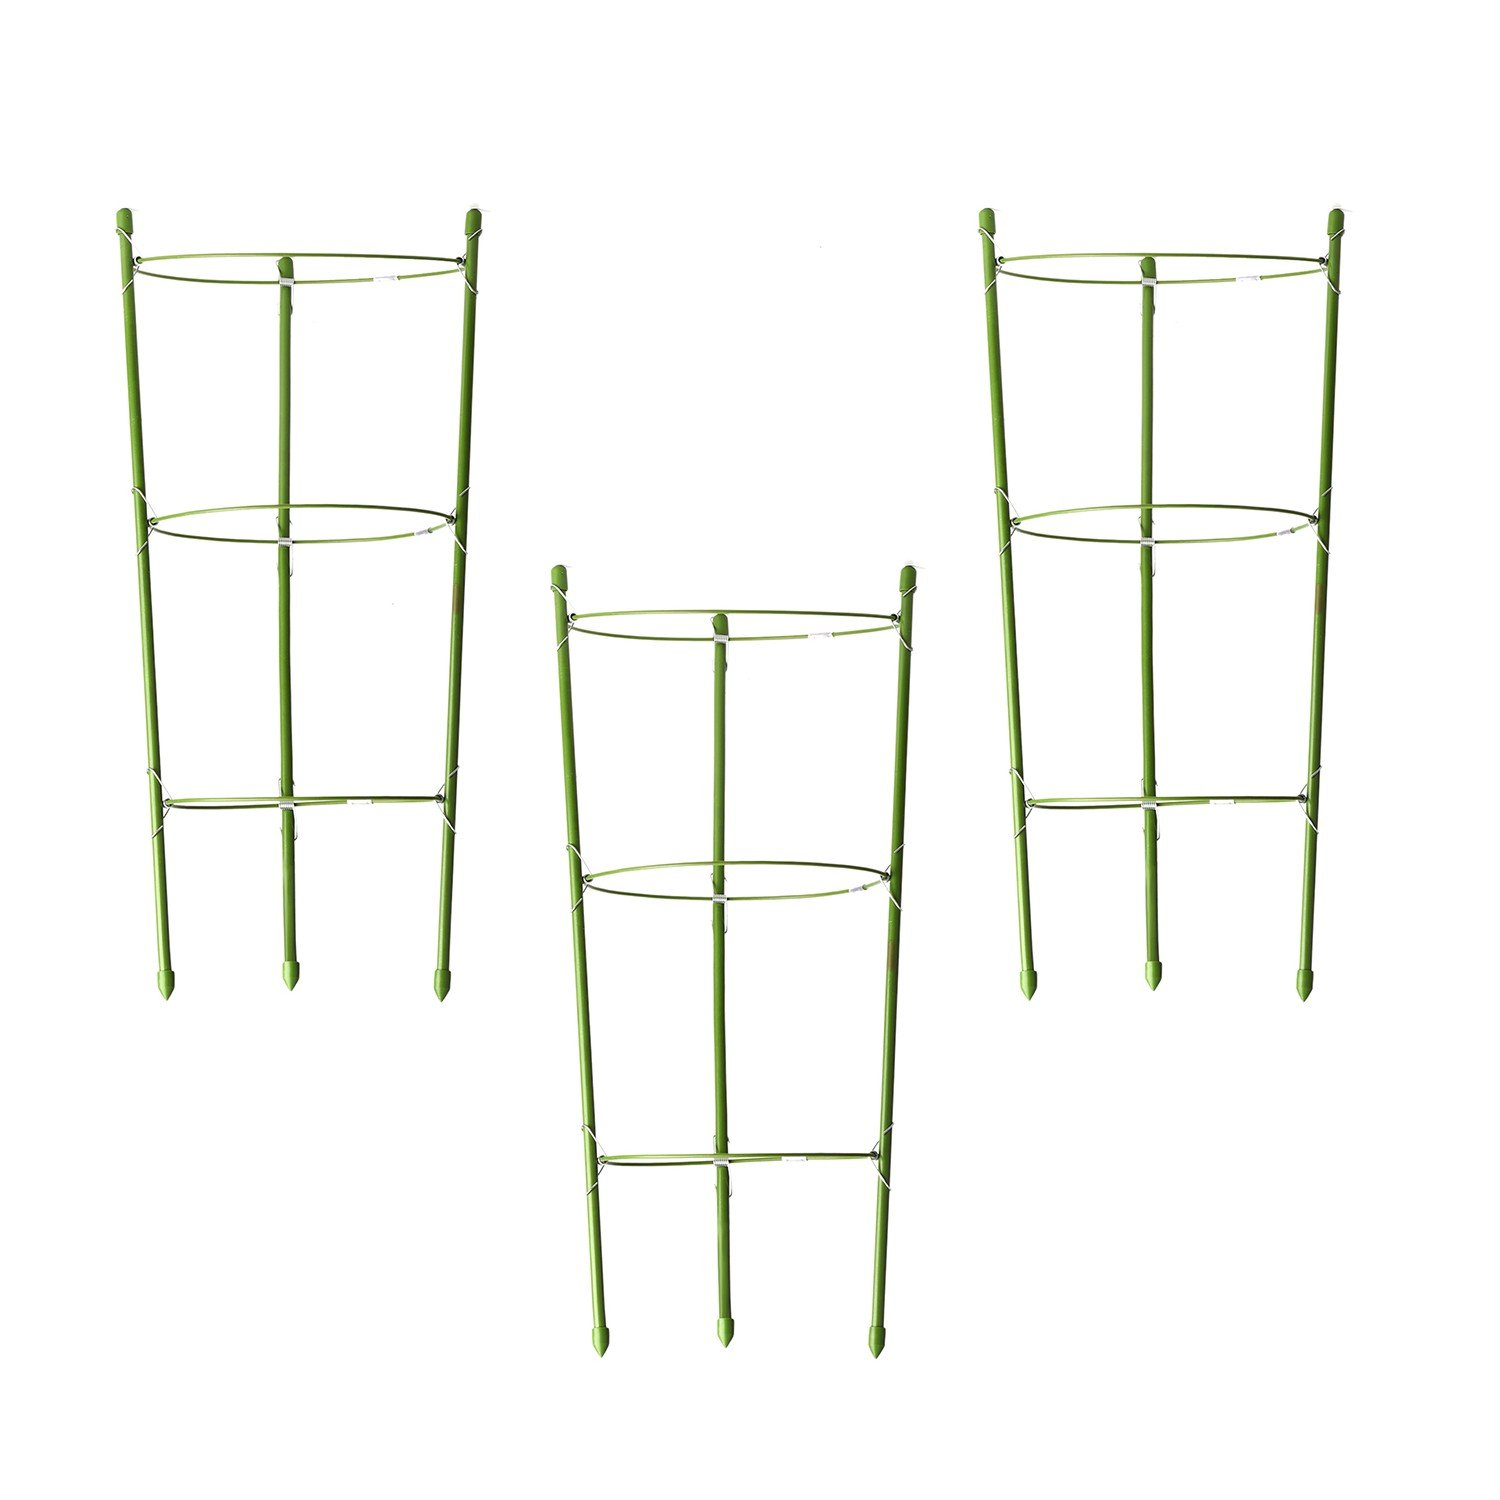 Funseedrr Garden Plant Supports Rings Treils for Plant Flower, with 3 Adjustable Rings(3 set)